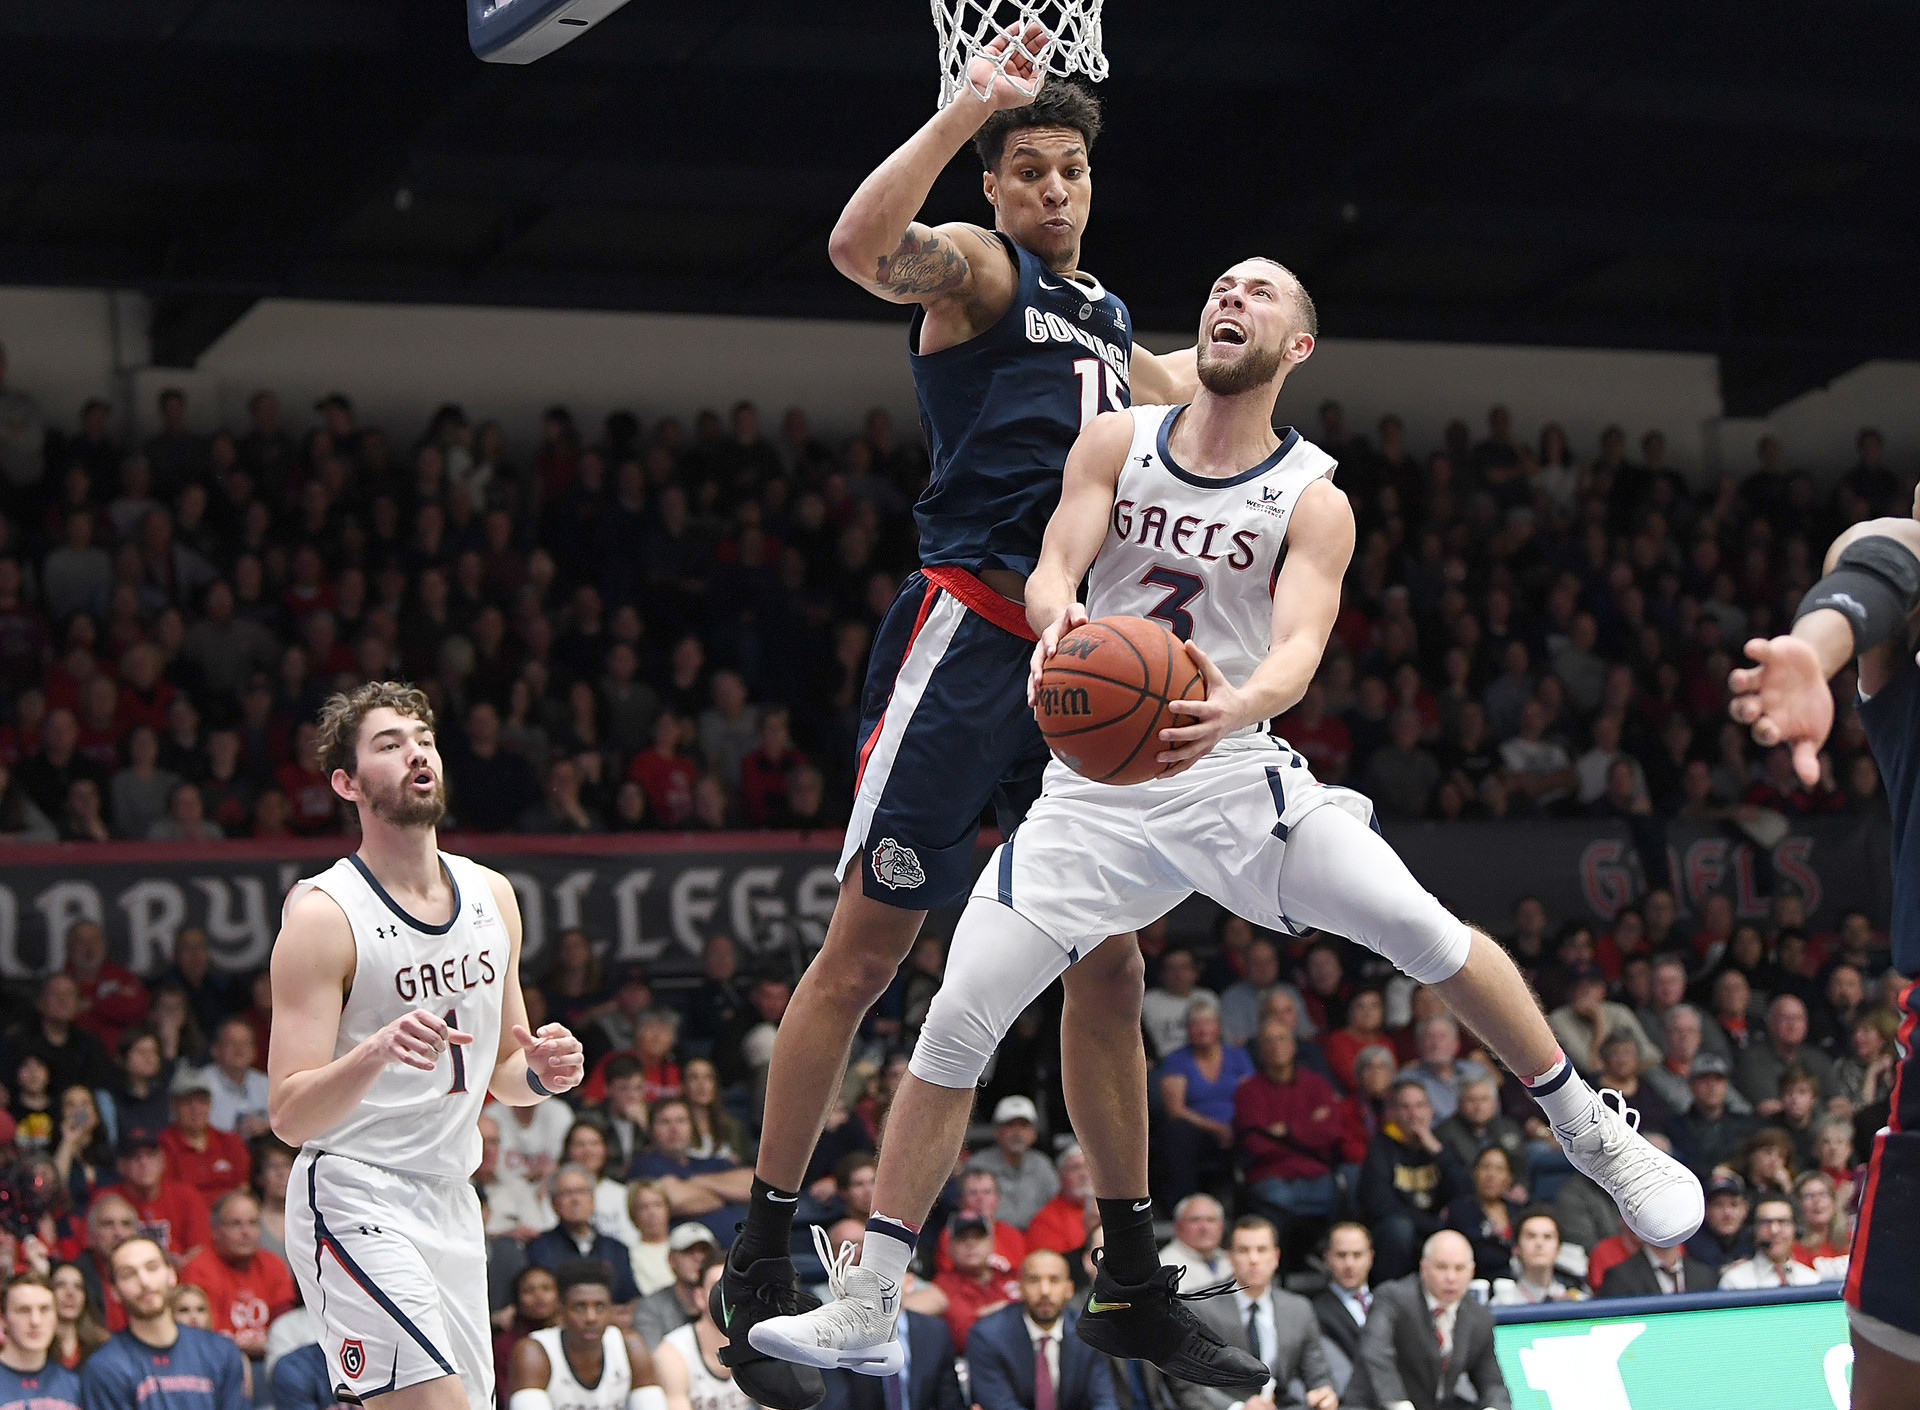 St. Mary's to Play Reigning Champs Villanova in NCAA Men's Basketball Tournament